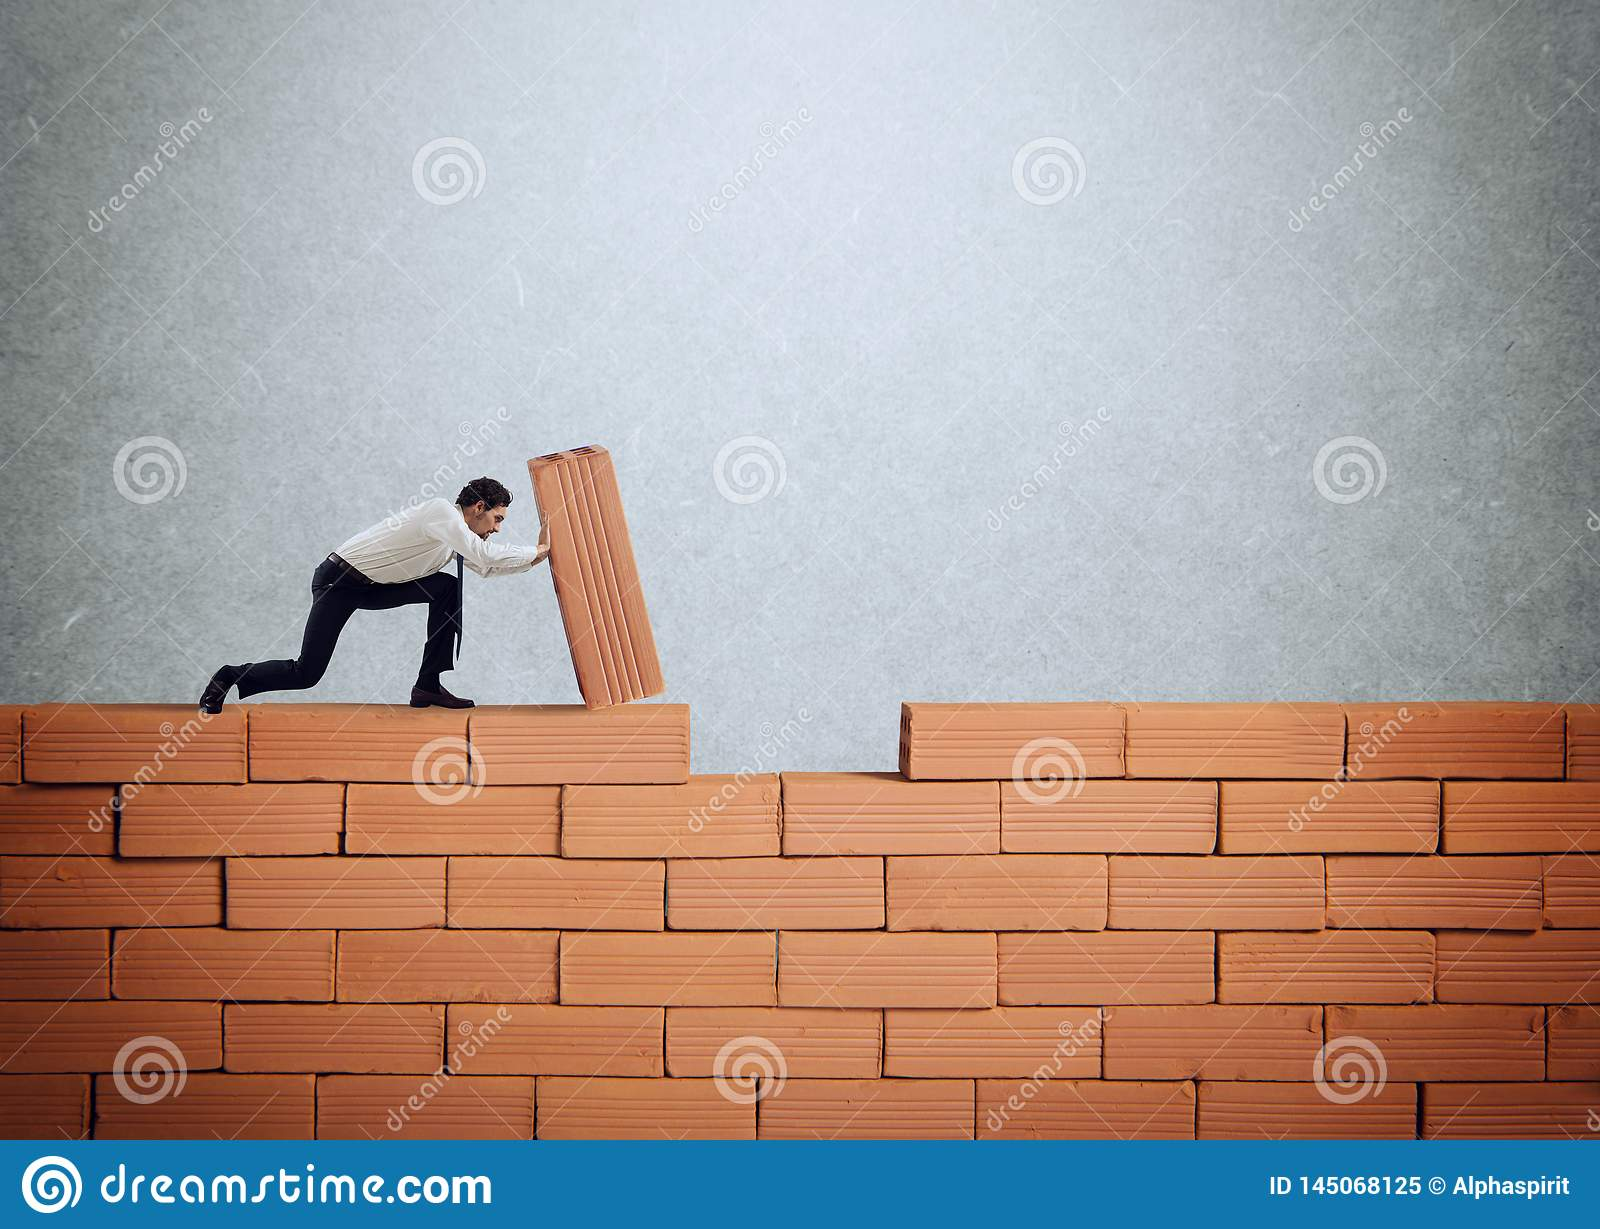 Businessman puts a brick to build a wall. Concept of new business, partnership, integration and startup